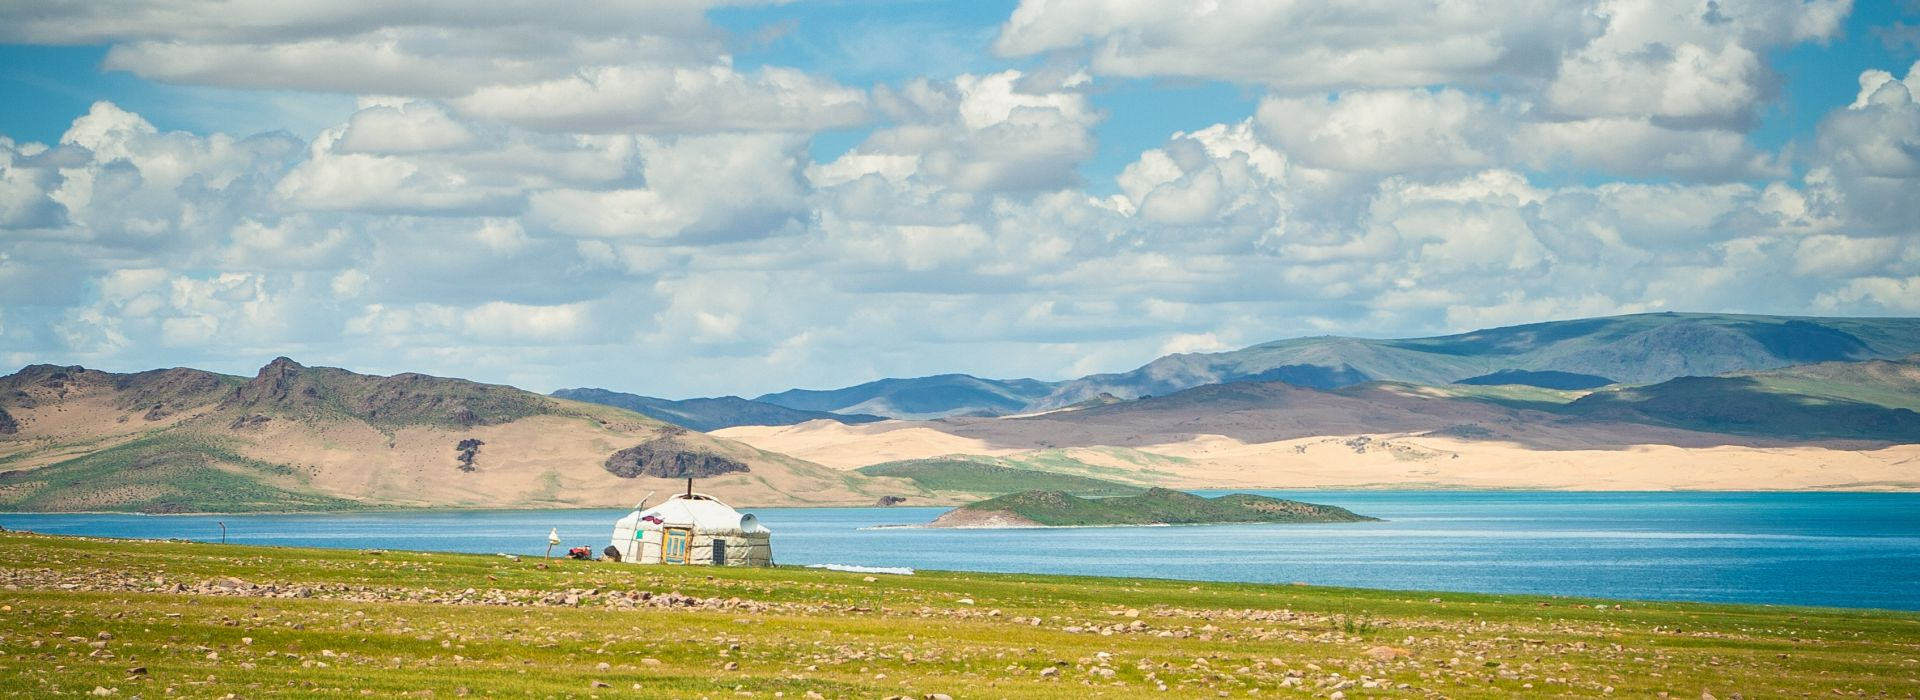 travelling-in-mongolia-tours-and-vacatio